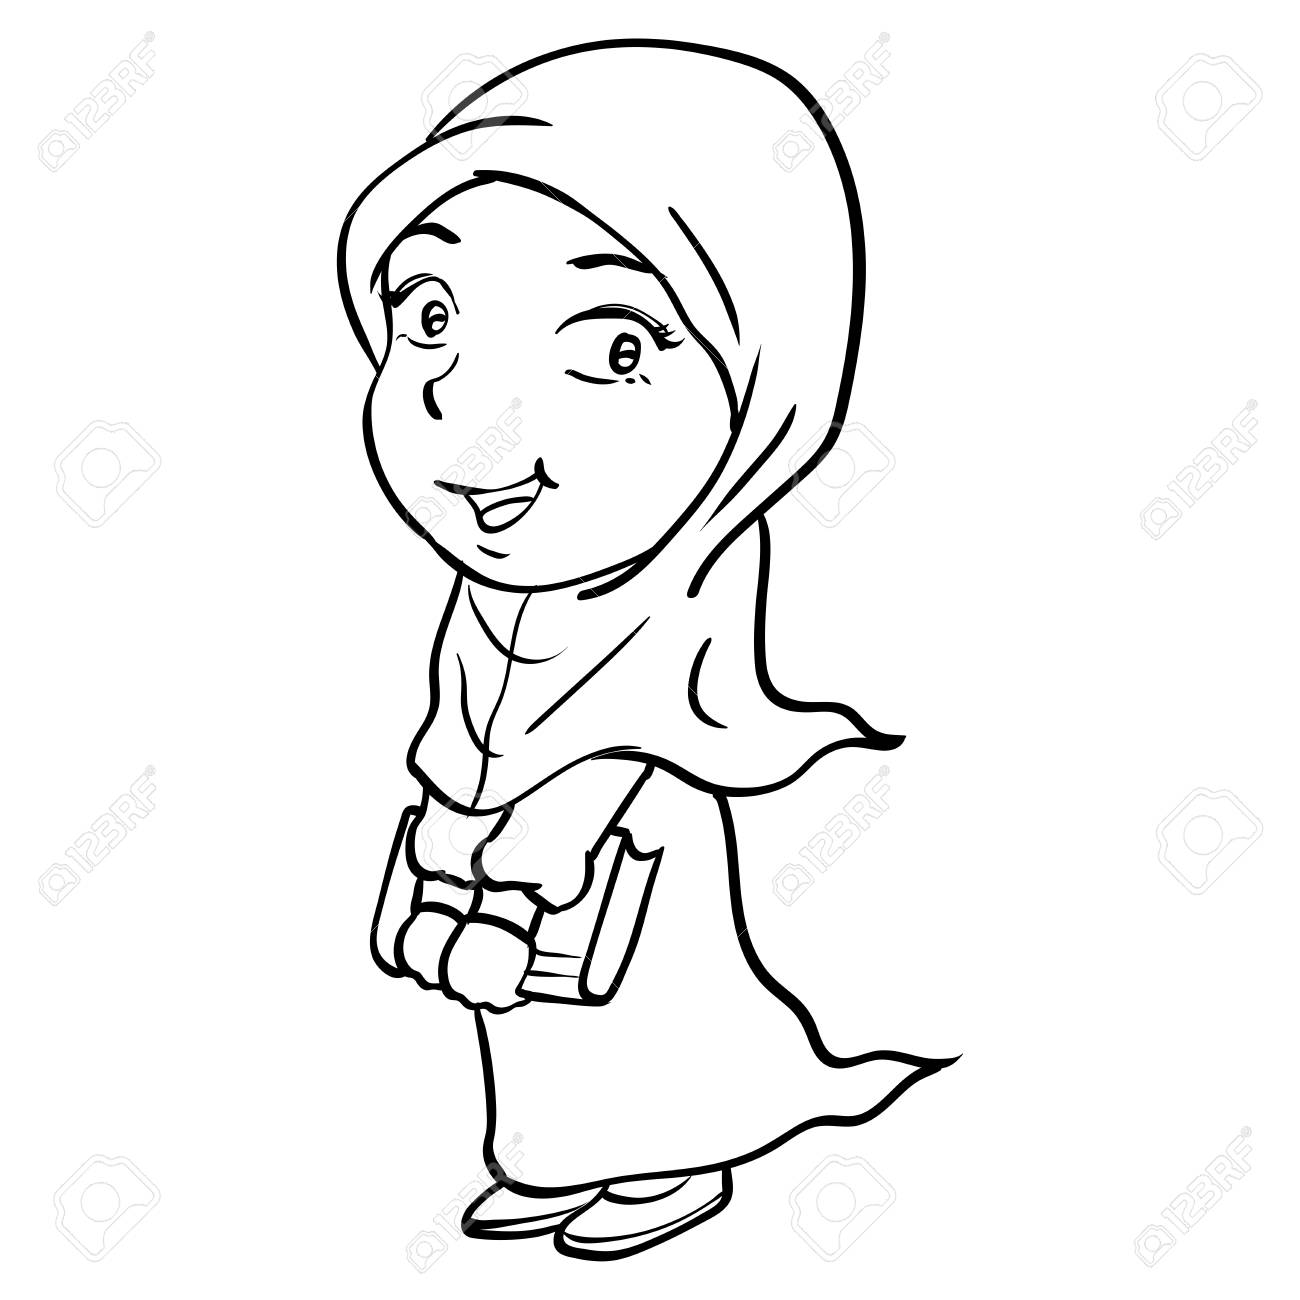 1300x1300 Hand Drawing Of Cartoon Smiley Muslim Girl Holding Book, Isolated